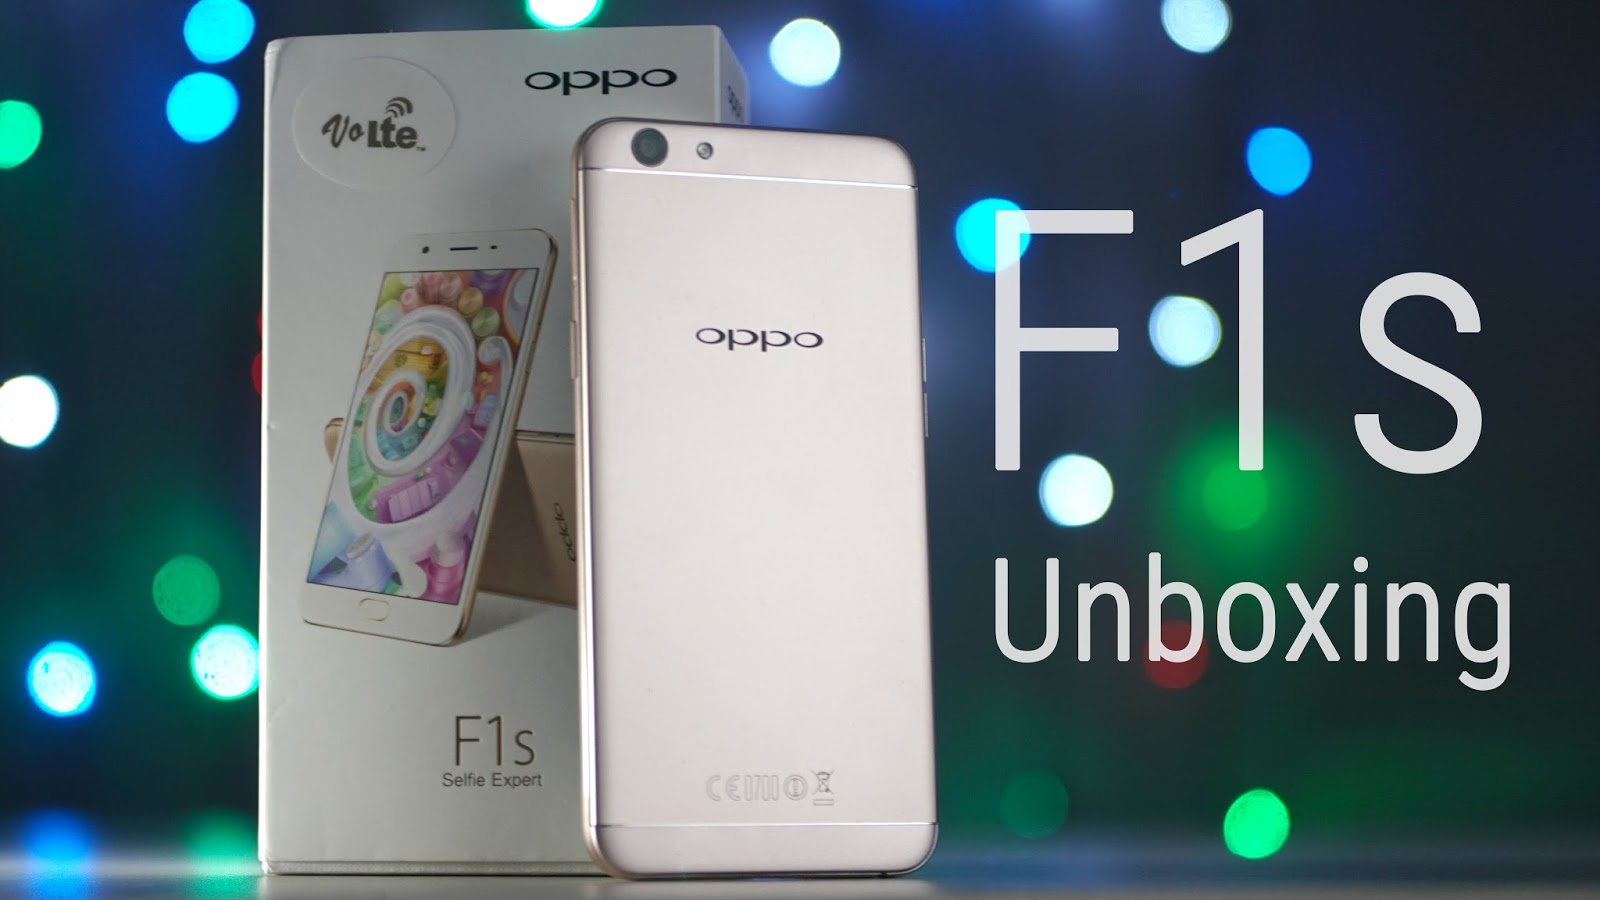 Best OPPO F1s Selfie Expert Smartphone or Best camera phone ...